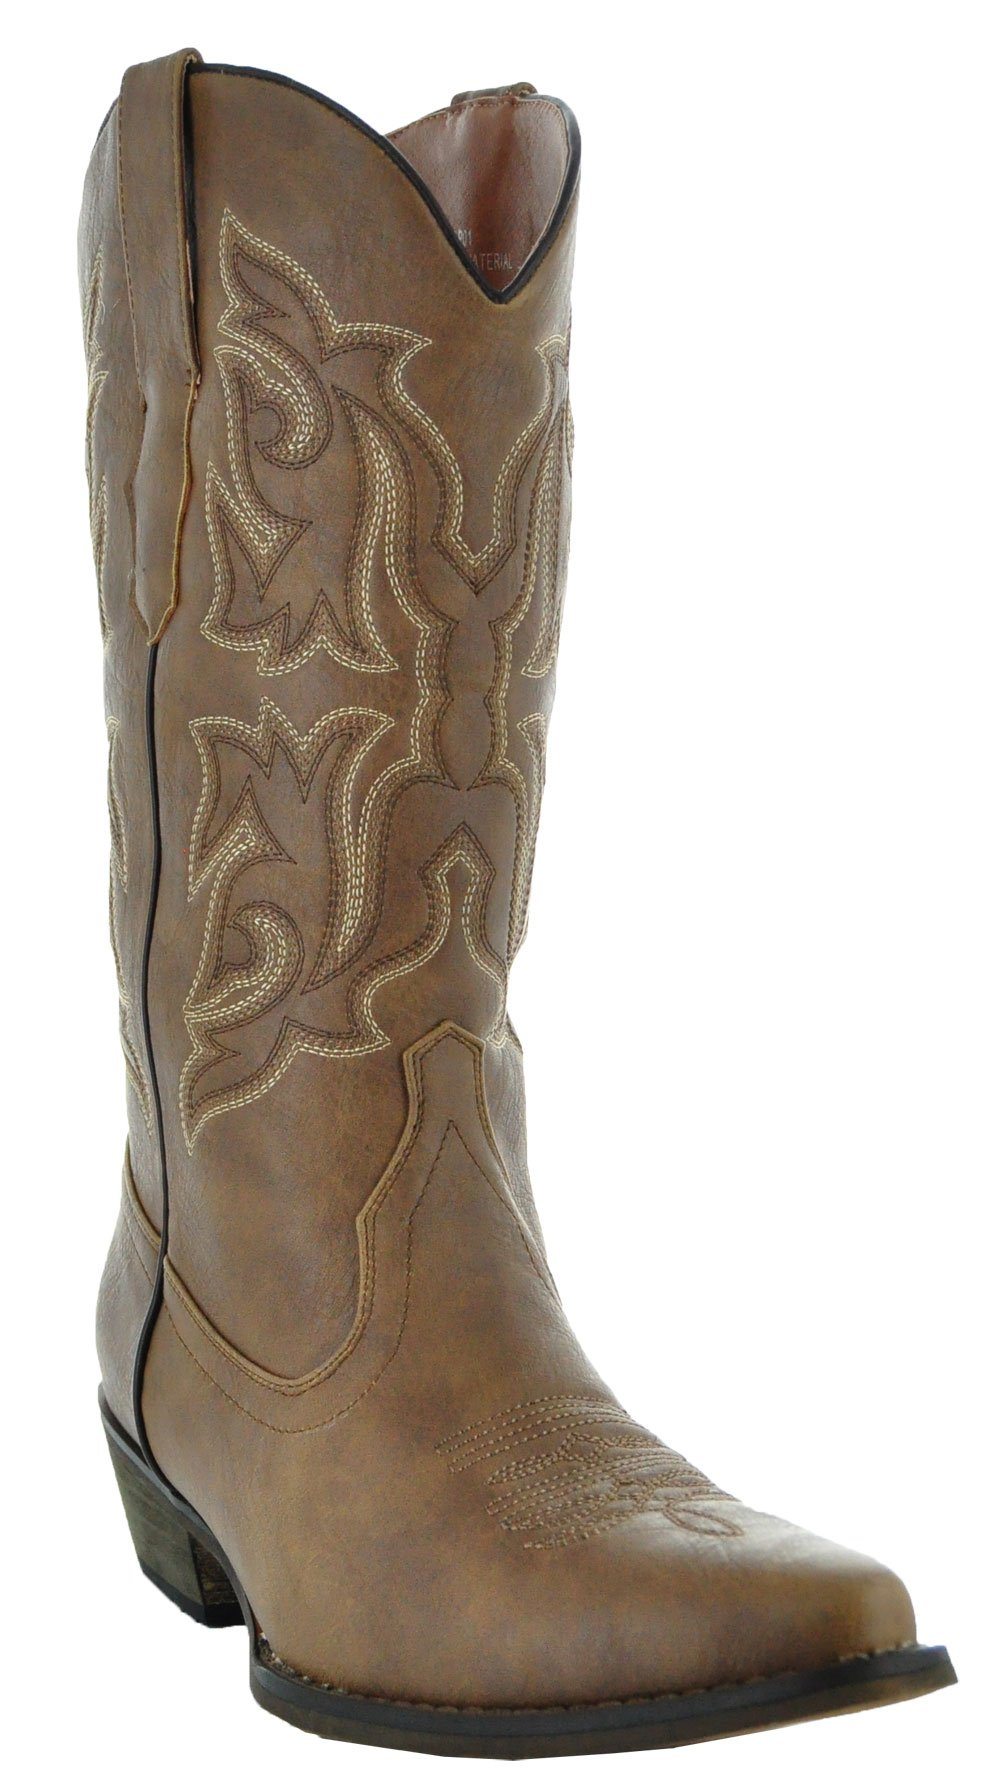 Country Love Pointed Toe Women's Cowboy Boots W101-1001 (7, Brown)